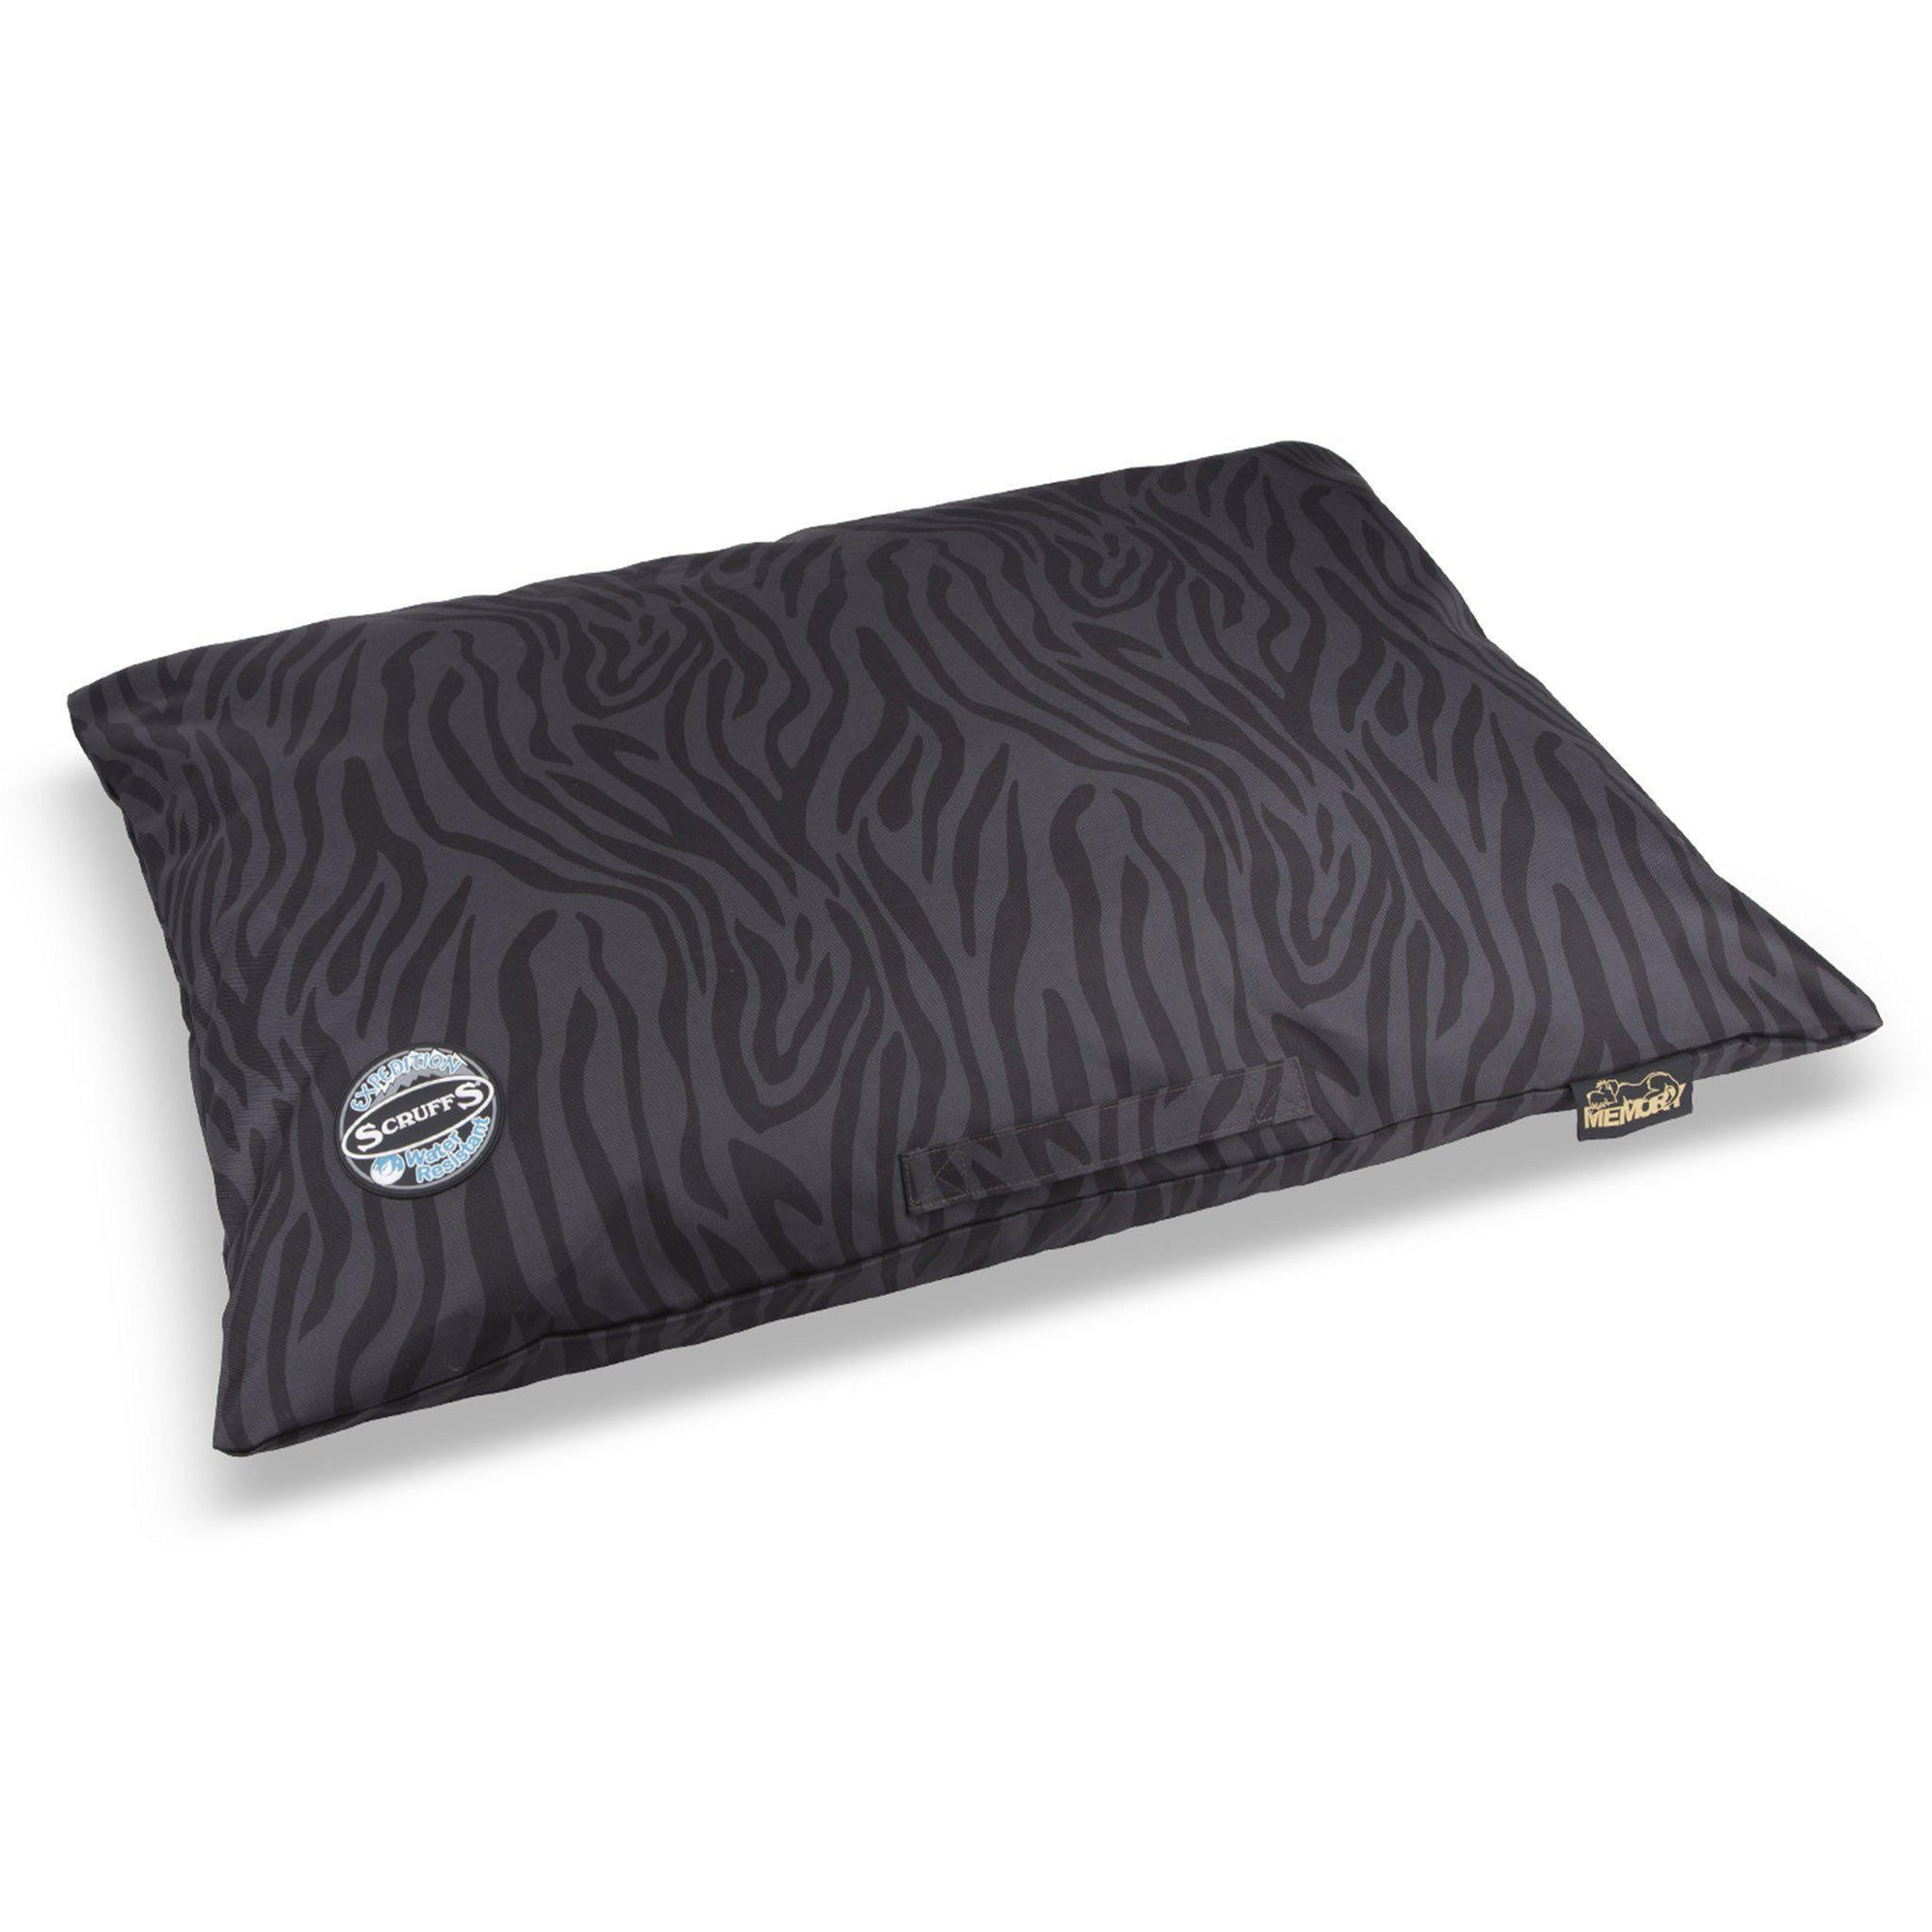 Scruffs Expedition Orthopaedic Memory Pillow Bed - ComfyPet Products